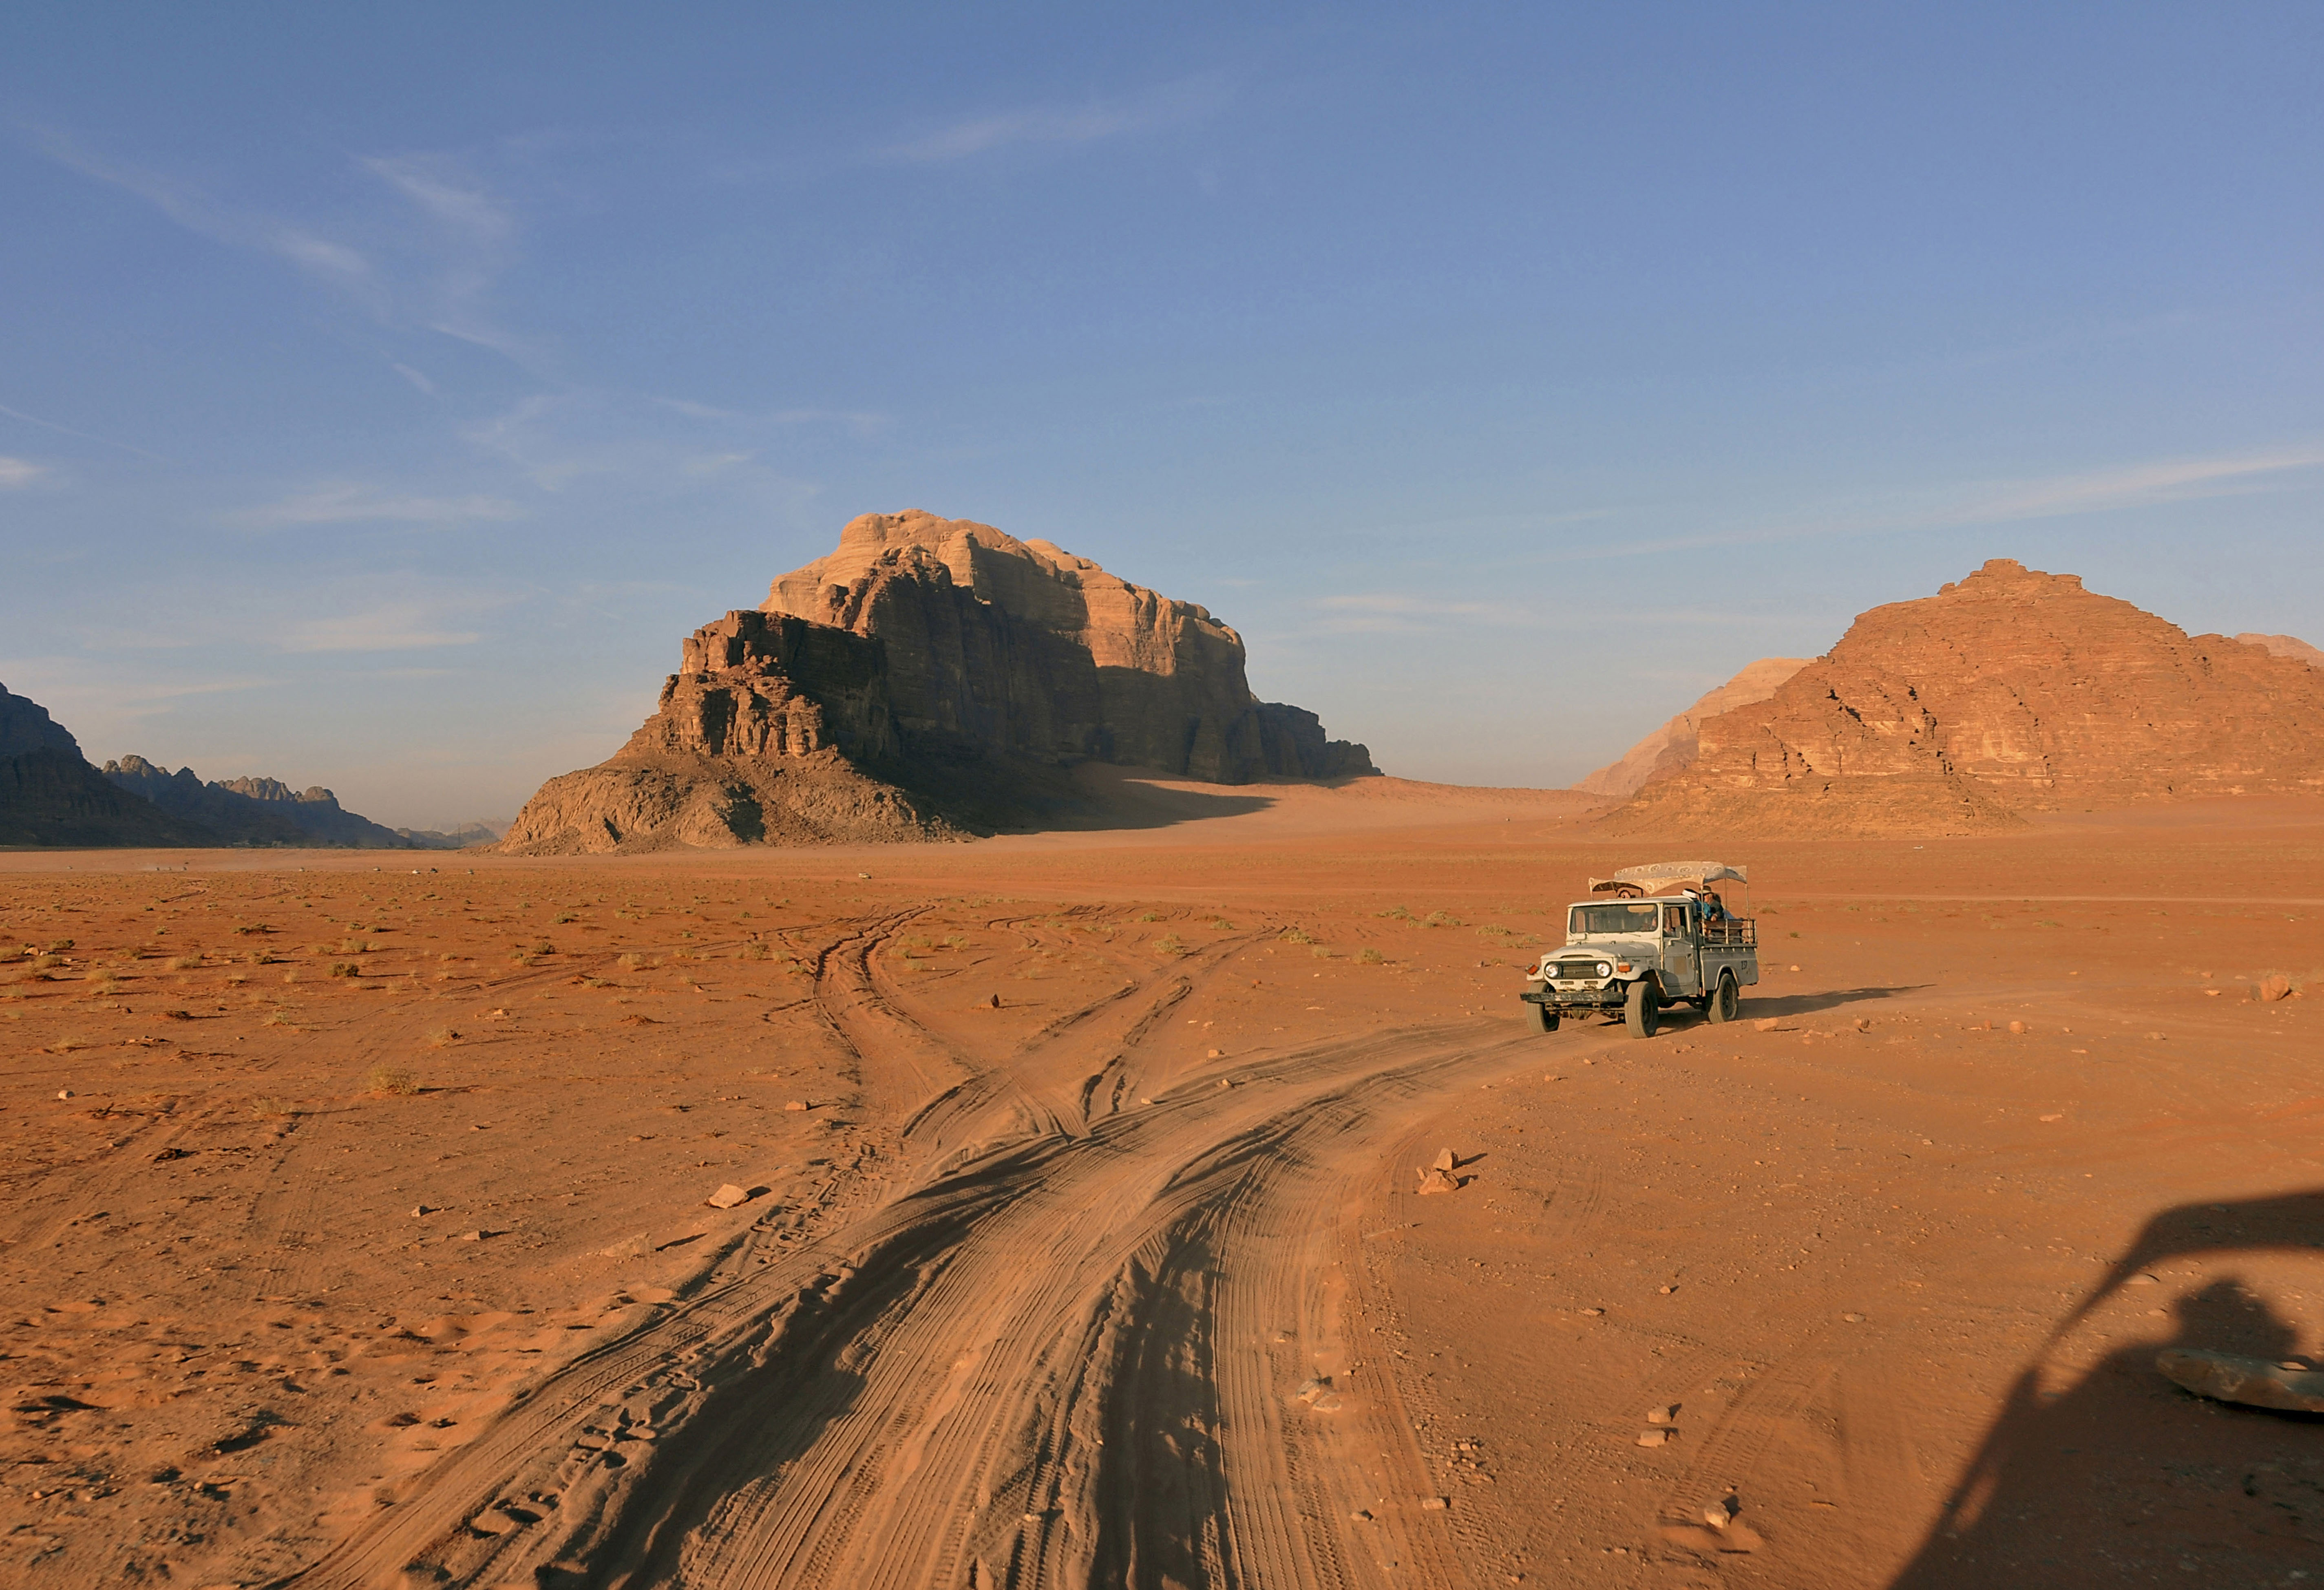 Wadi Rum Jordan at Sunset - 19 x 13 - Photography